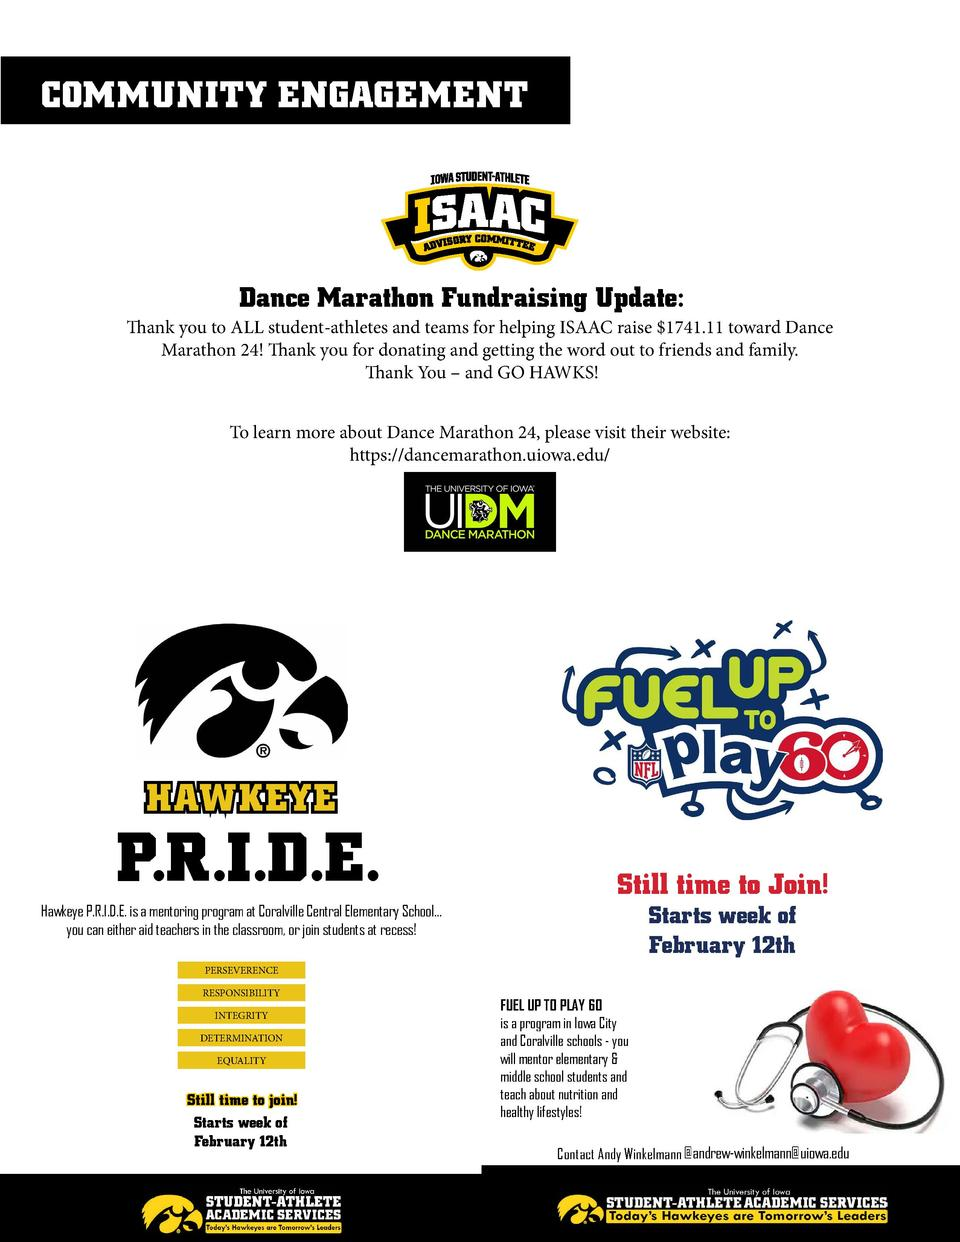 COMMUNITY ENGAGEMENT  Dance Marathon Fundraising Update  Thank you to ALL student-athletes and teams for helping ISAAC rai...